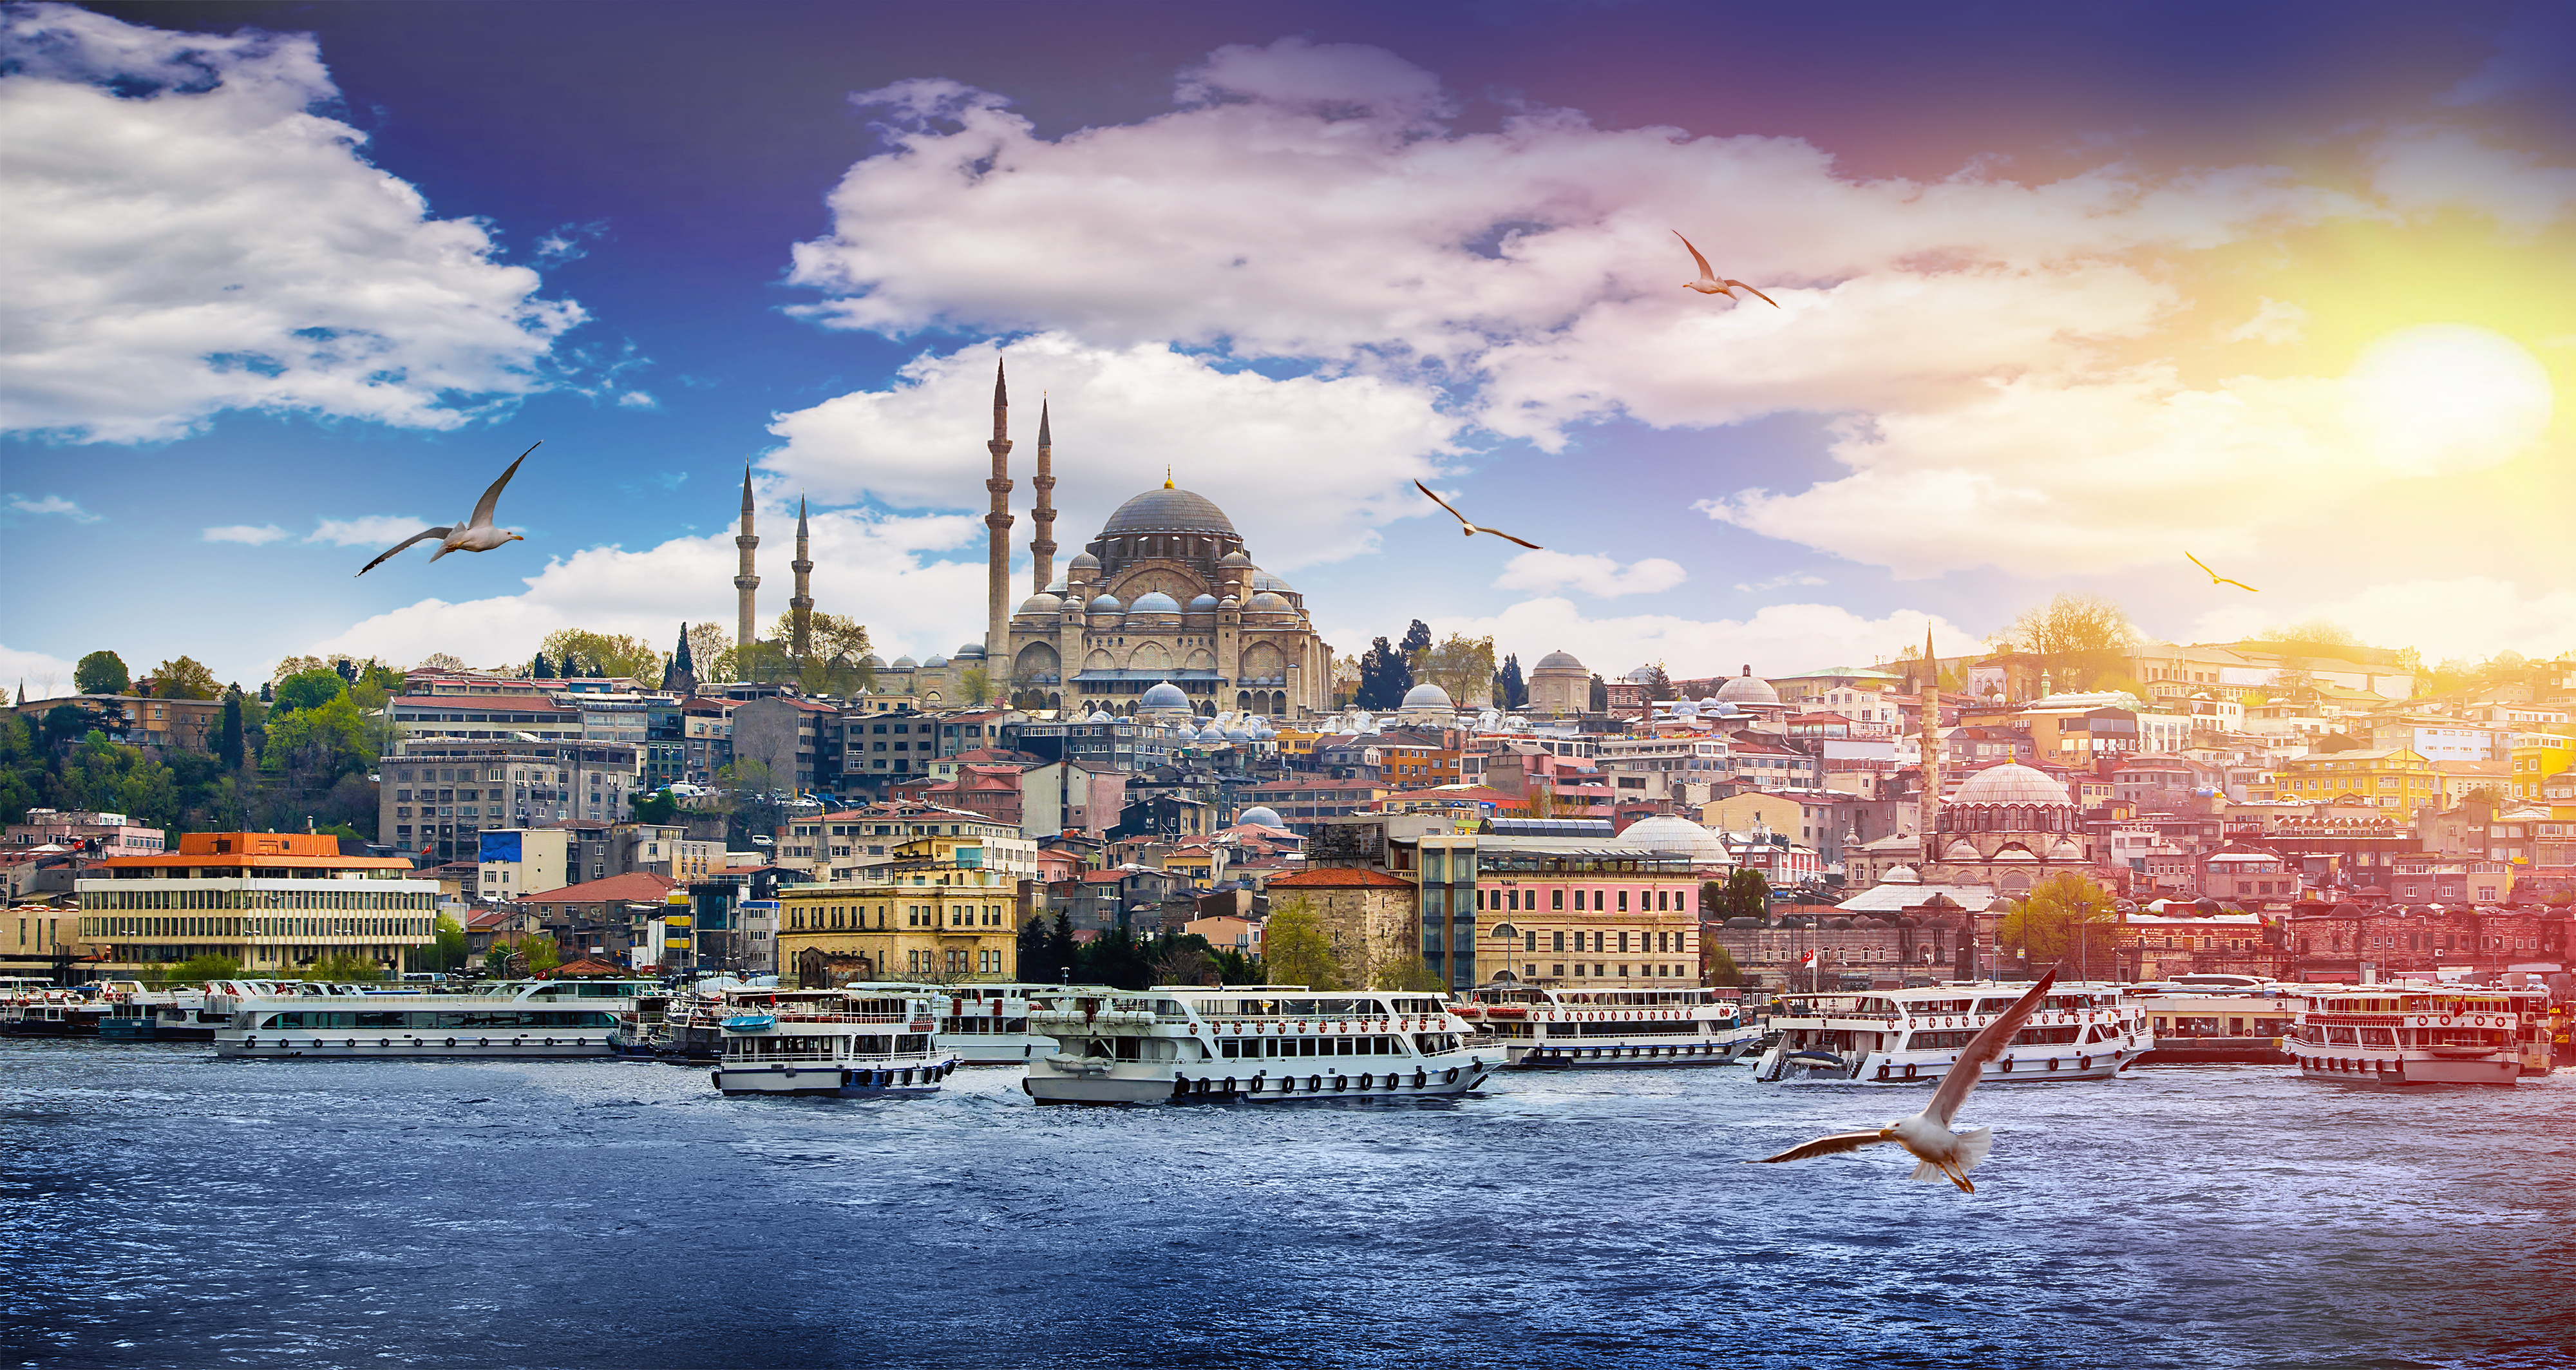 Cityguide Business Travellers Bleisure Guide to Istanbul